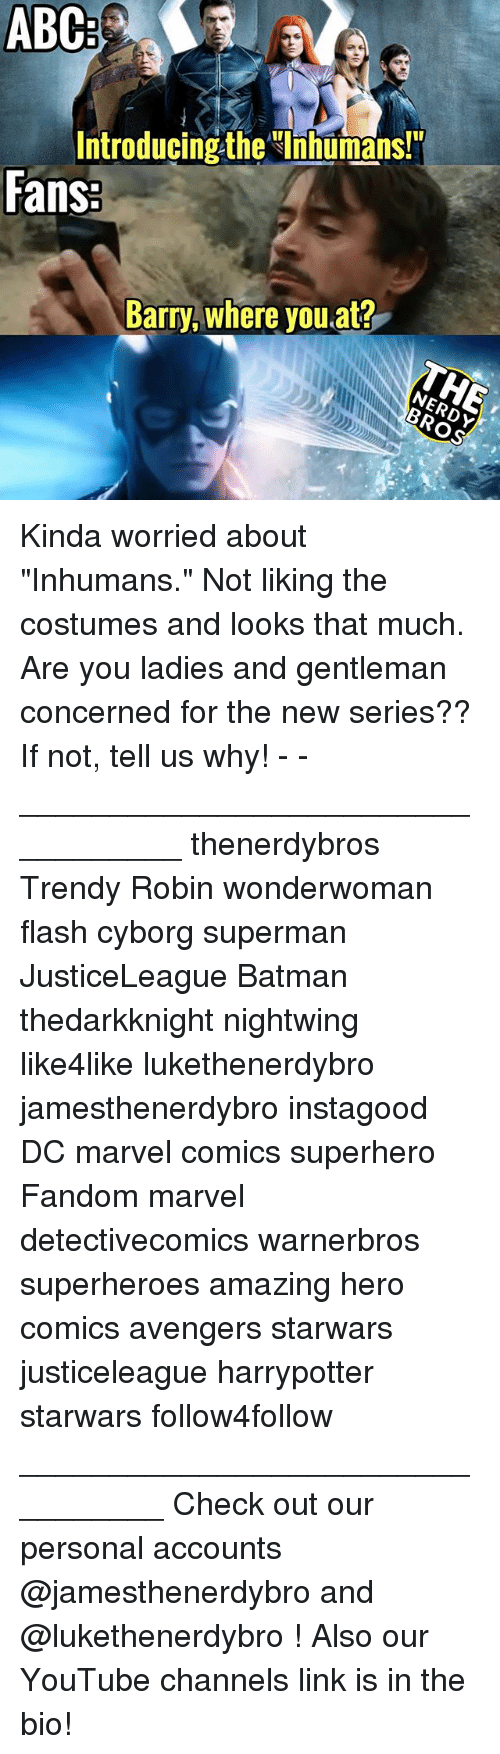 """Abc, Batman, and Marvel Comics: ABC  Introducing the Ihhumans!  Fans  Barry, where you at? Kinda worried about """"Inhumans."""" Not liking the costumes and looks that much. Are you ladies and gentleman concerned for the new series?? If not, tell us why! - - __________________________________ thenerdybros Trendy Robin wonderwoman flash cyborg superman JusticeLeague Batman thedarkknight nightwing like4like lukethenerdybro jamesthenerdybro instagood DC marvel comics superhero Fandom marvel detectivecomics warnerbros superheroes amazing hero comics avengers starwars justiceleague harrypotter starwars follow4follow _________________________________ Check out our personal accounts @jamesthenerdybro and @lukethenerdybro ! Also our YouTube channels link is in the bio!"""